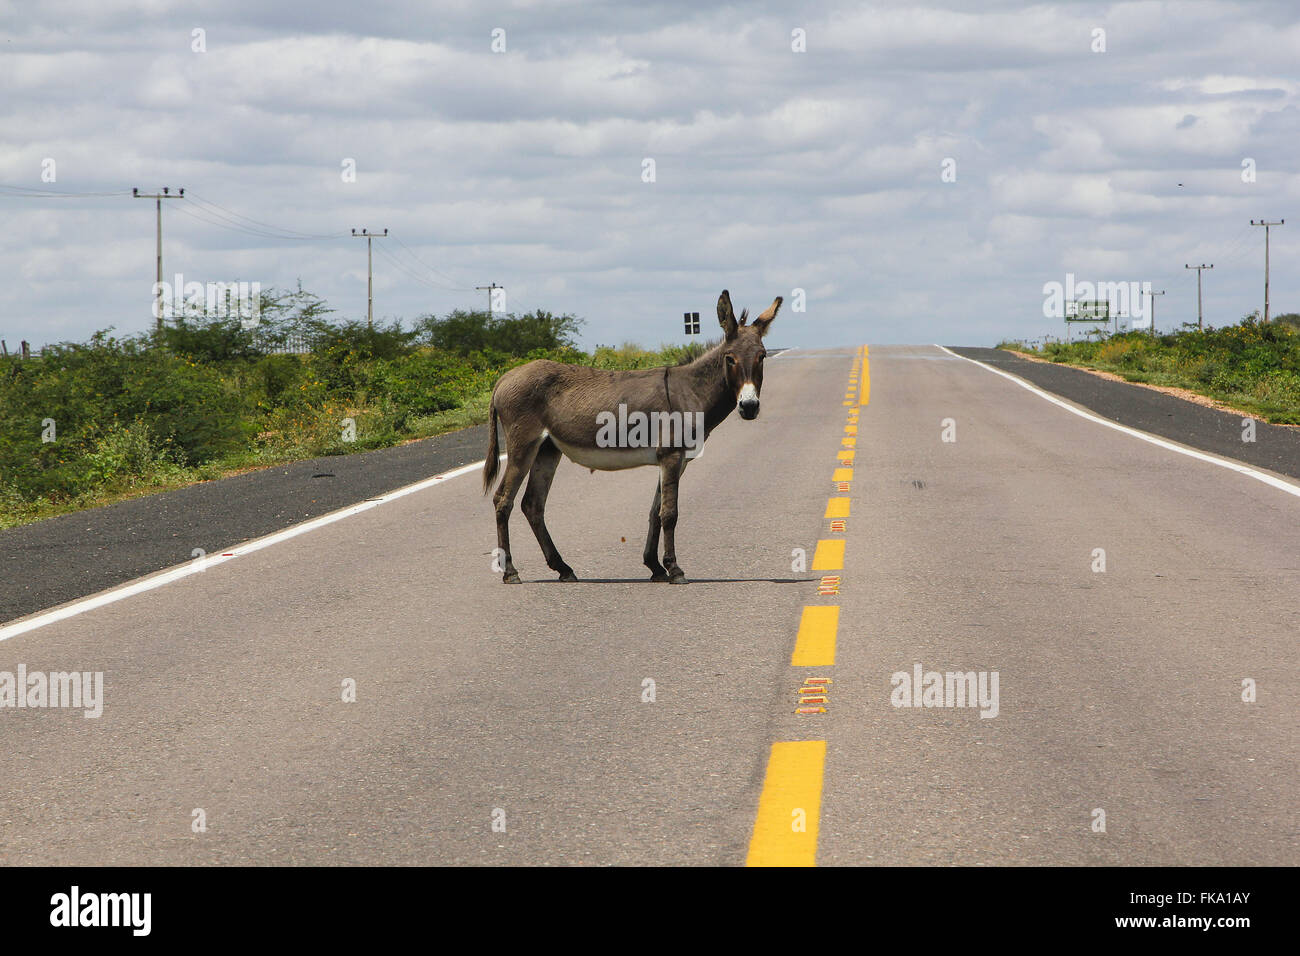 Donkey in the BR-407 - Stock Image